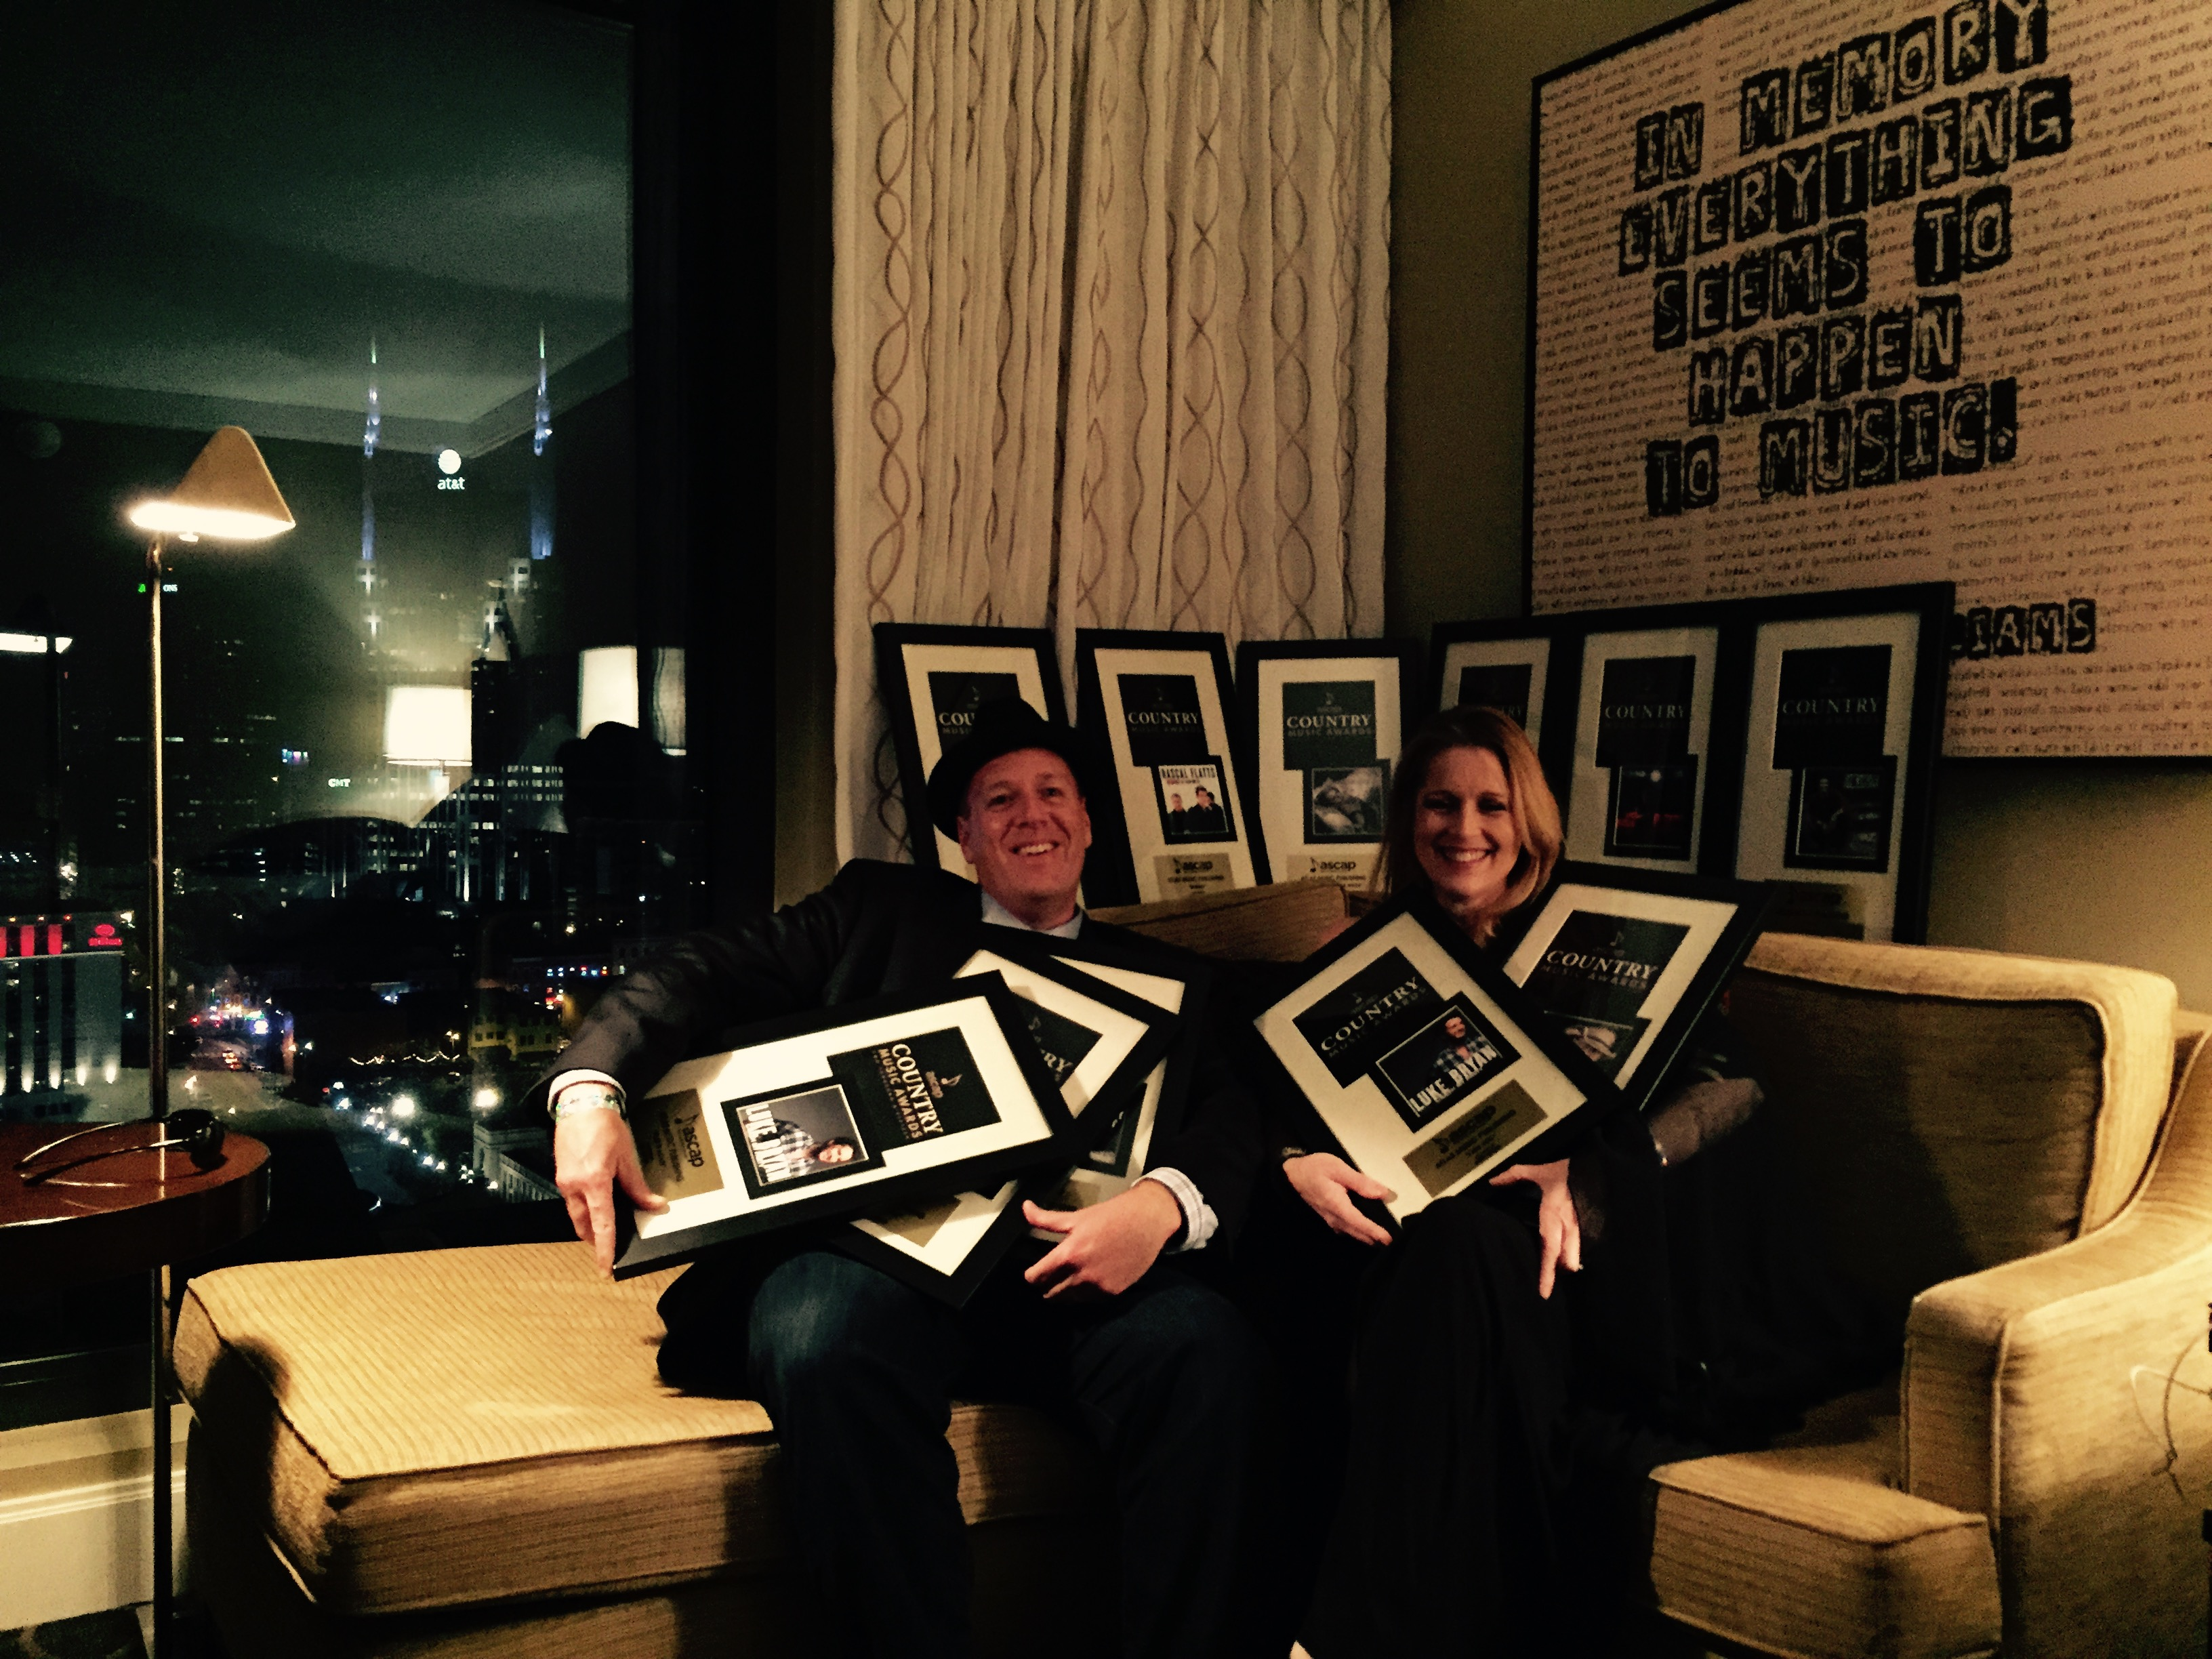 Atlas Combustion Take Home 11 ASCAP Awards!